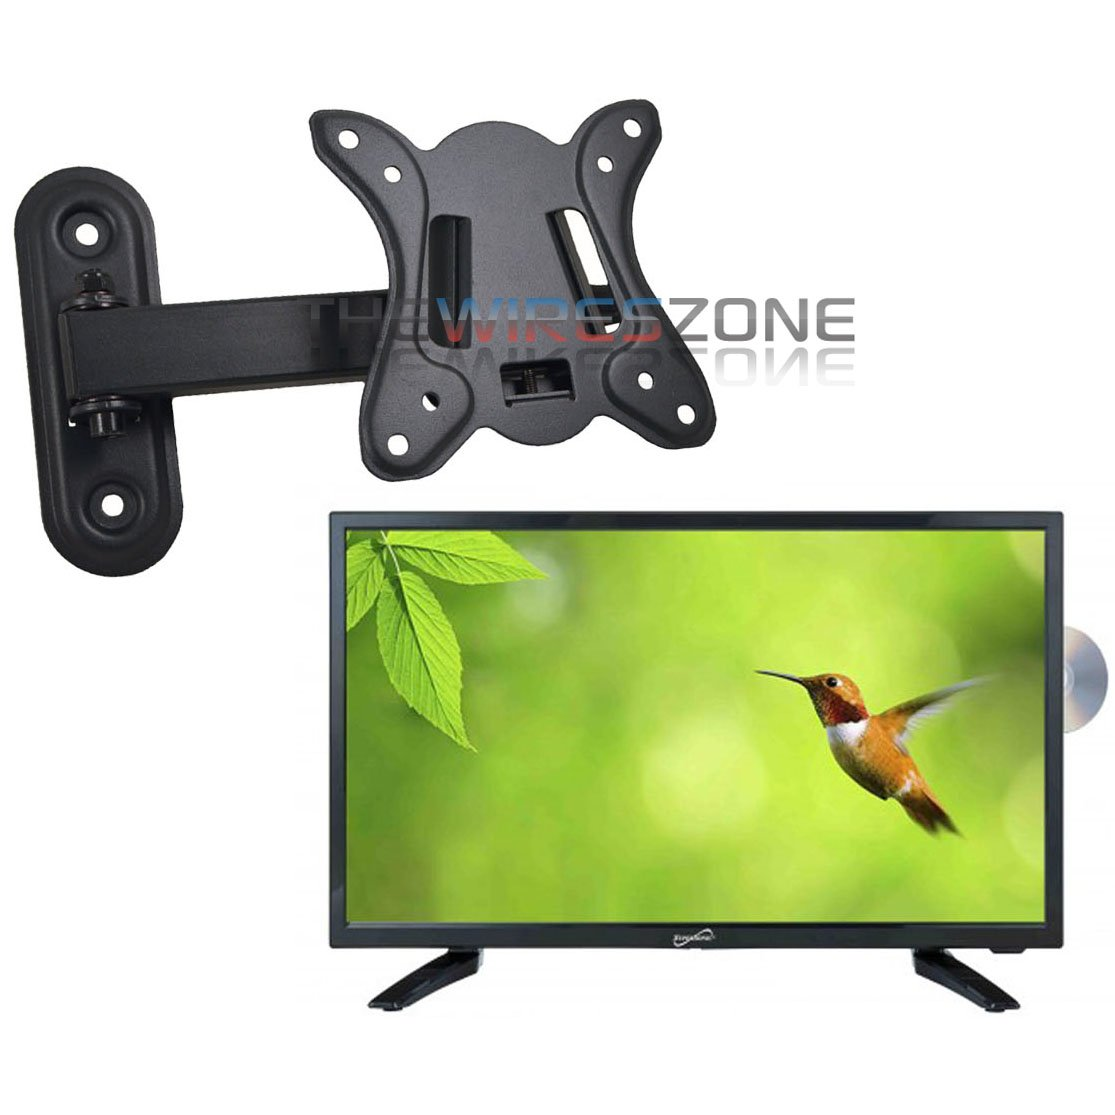 Supersonic SC-1912 19'' LED HDMI AC/DC Widescreen HDTV with DVD Player + Wall Mount by Supersonic